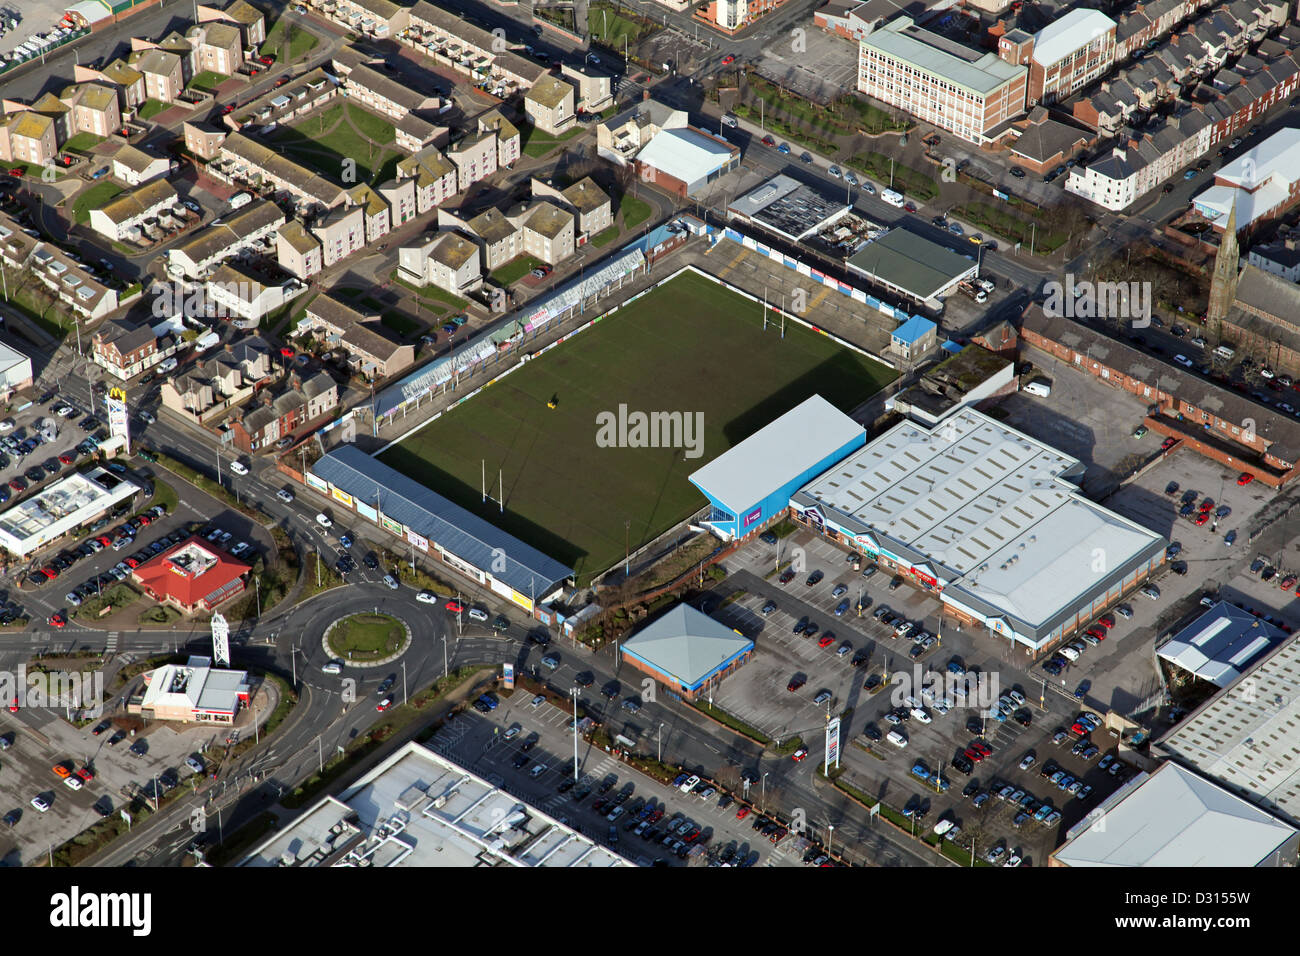 aerial view of the Barrow Raiders rugby league club stadium in Barrow-in-Furness - Stock Image